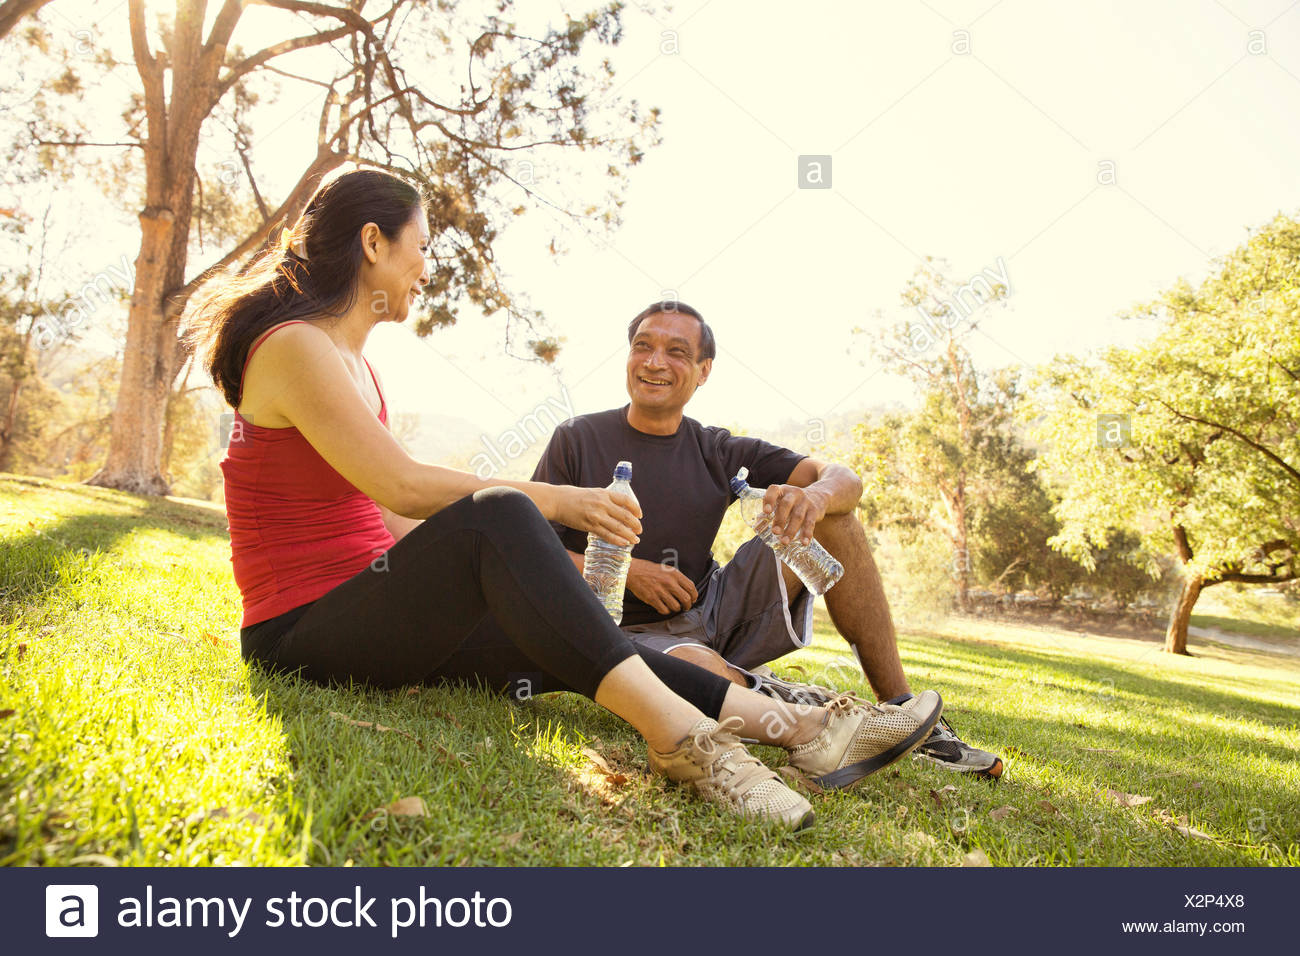 Mature running couple taking a break and drinking water in park - Stock Image